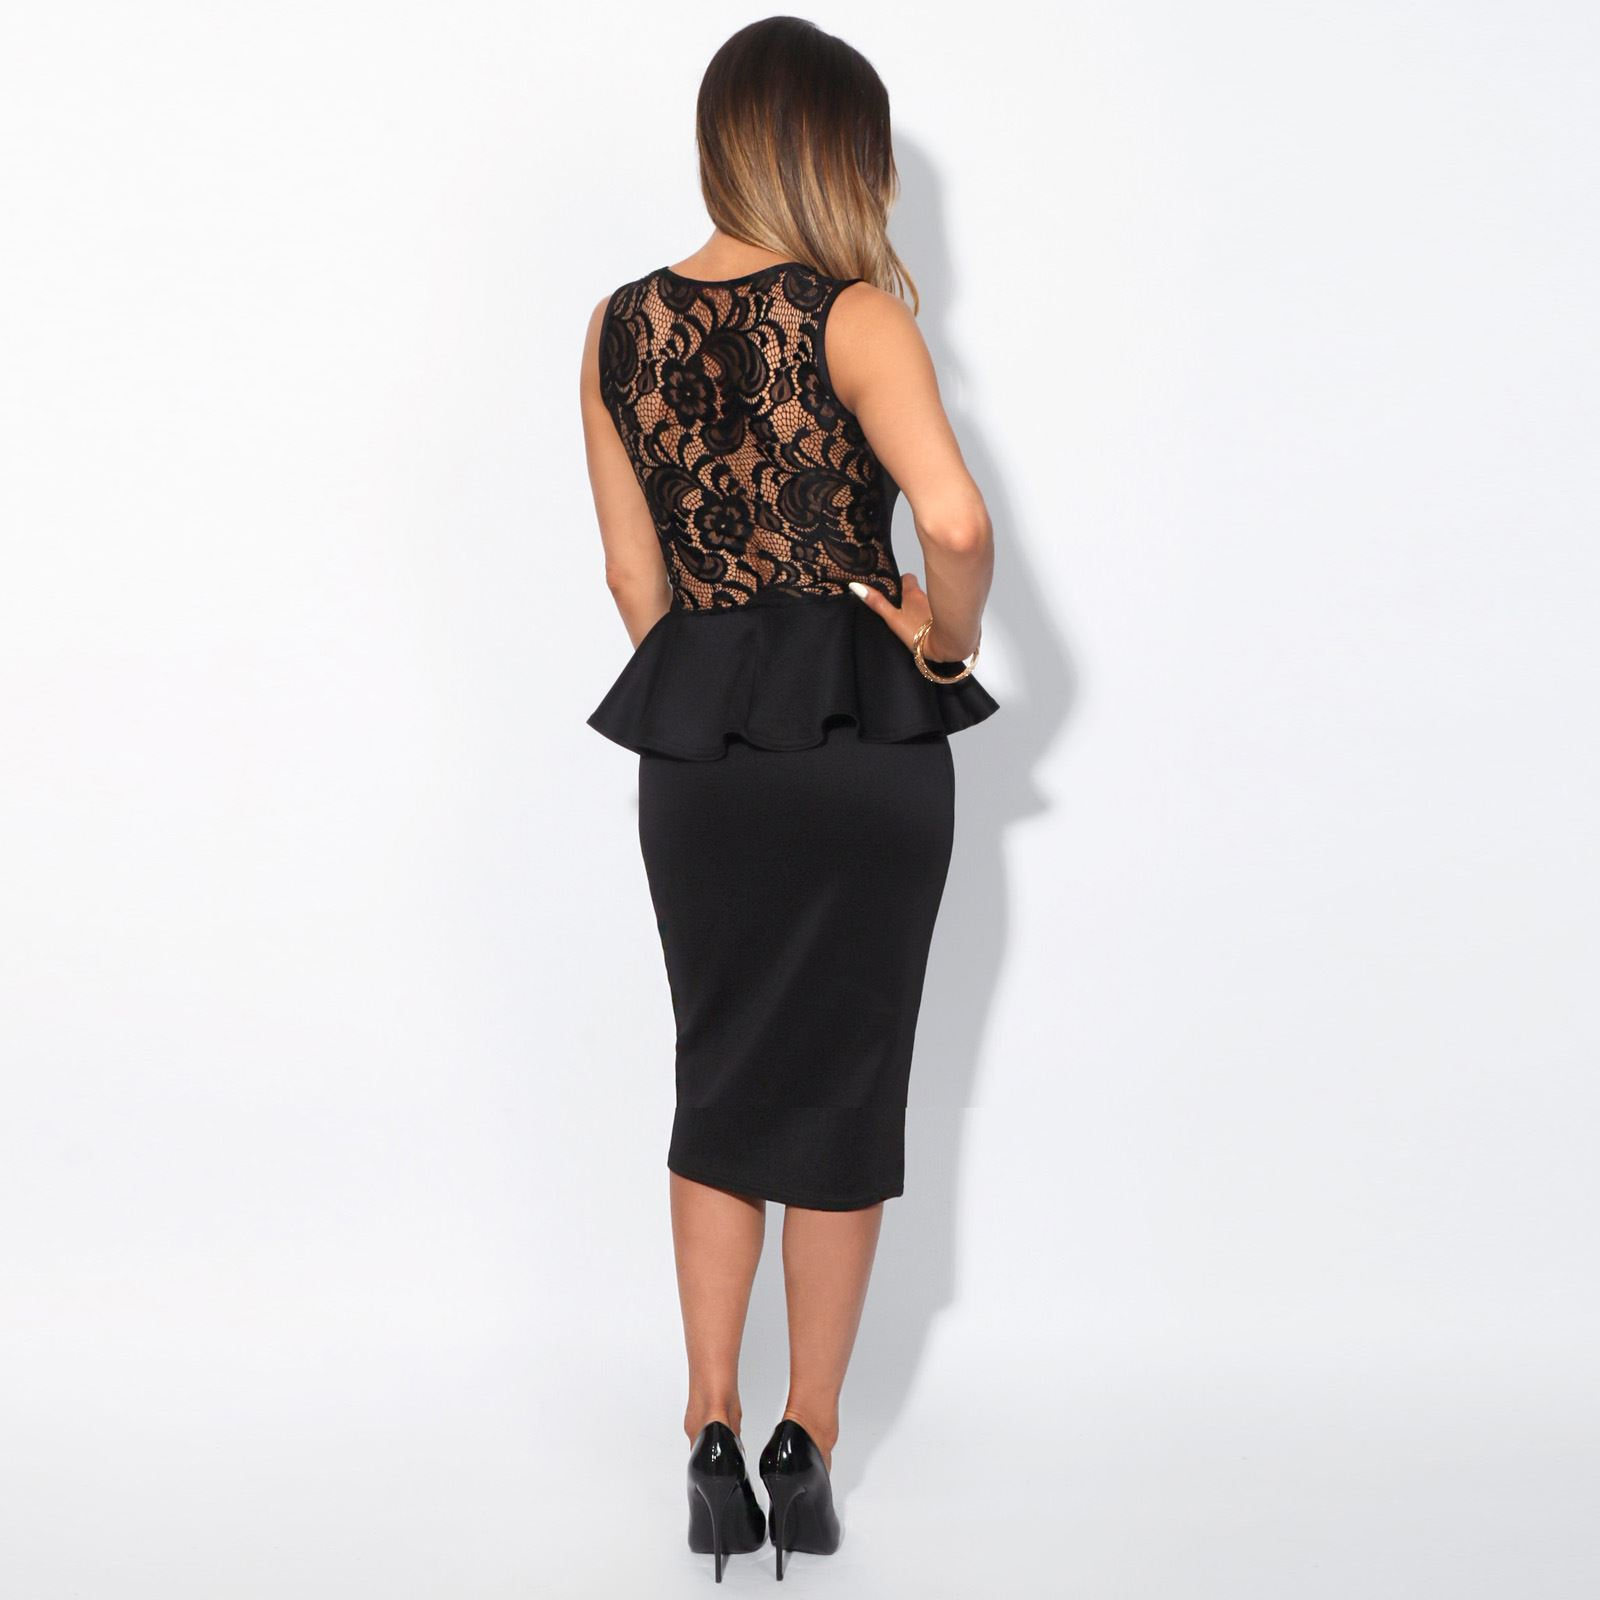 Womens-Ladies-Pencil-Lace-Dress-Mini-Midi-Skirt-Bodycon-Stretch-Frill-Party thumbnail 4